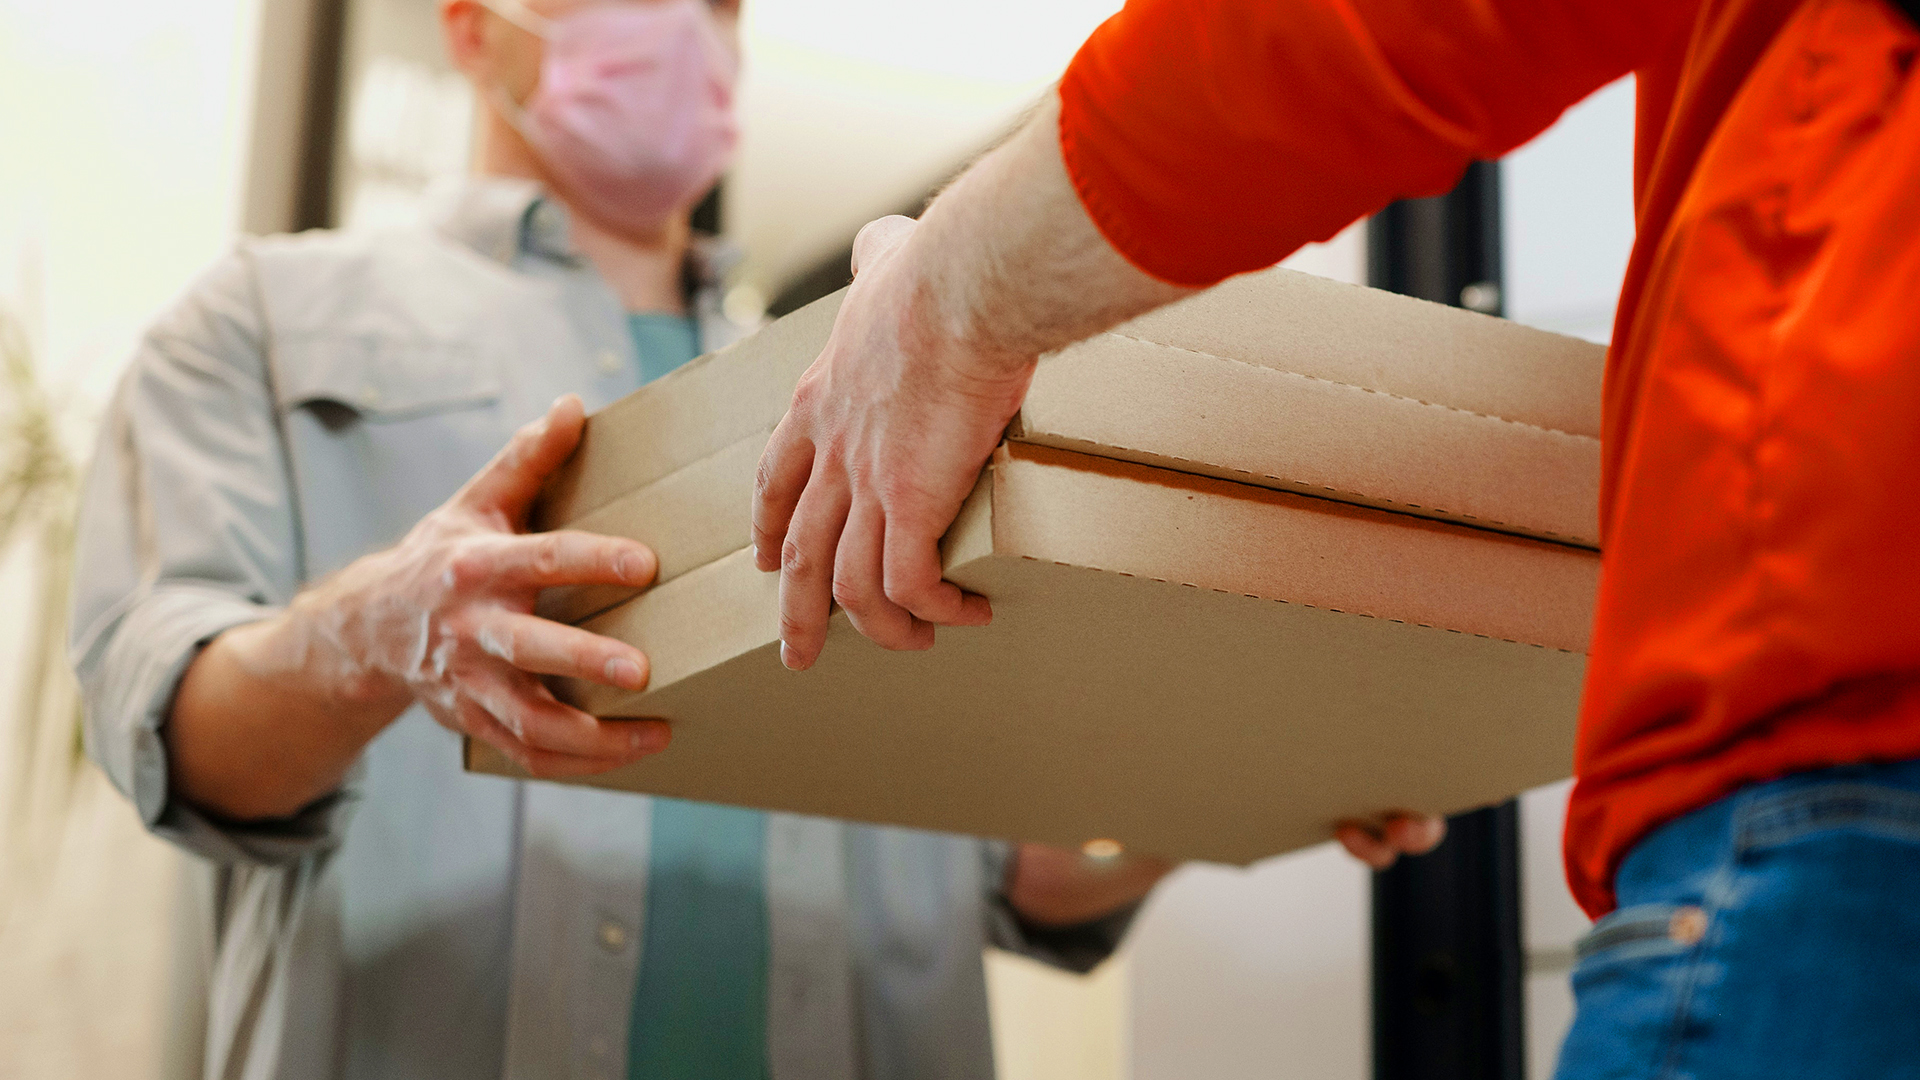 70% of shoppers in APAC prefer direct delivery of items: Survey